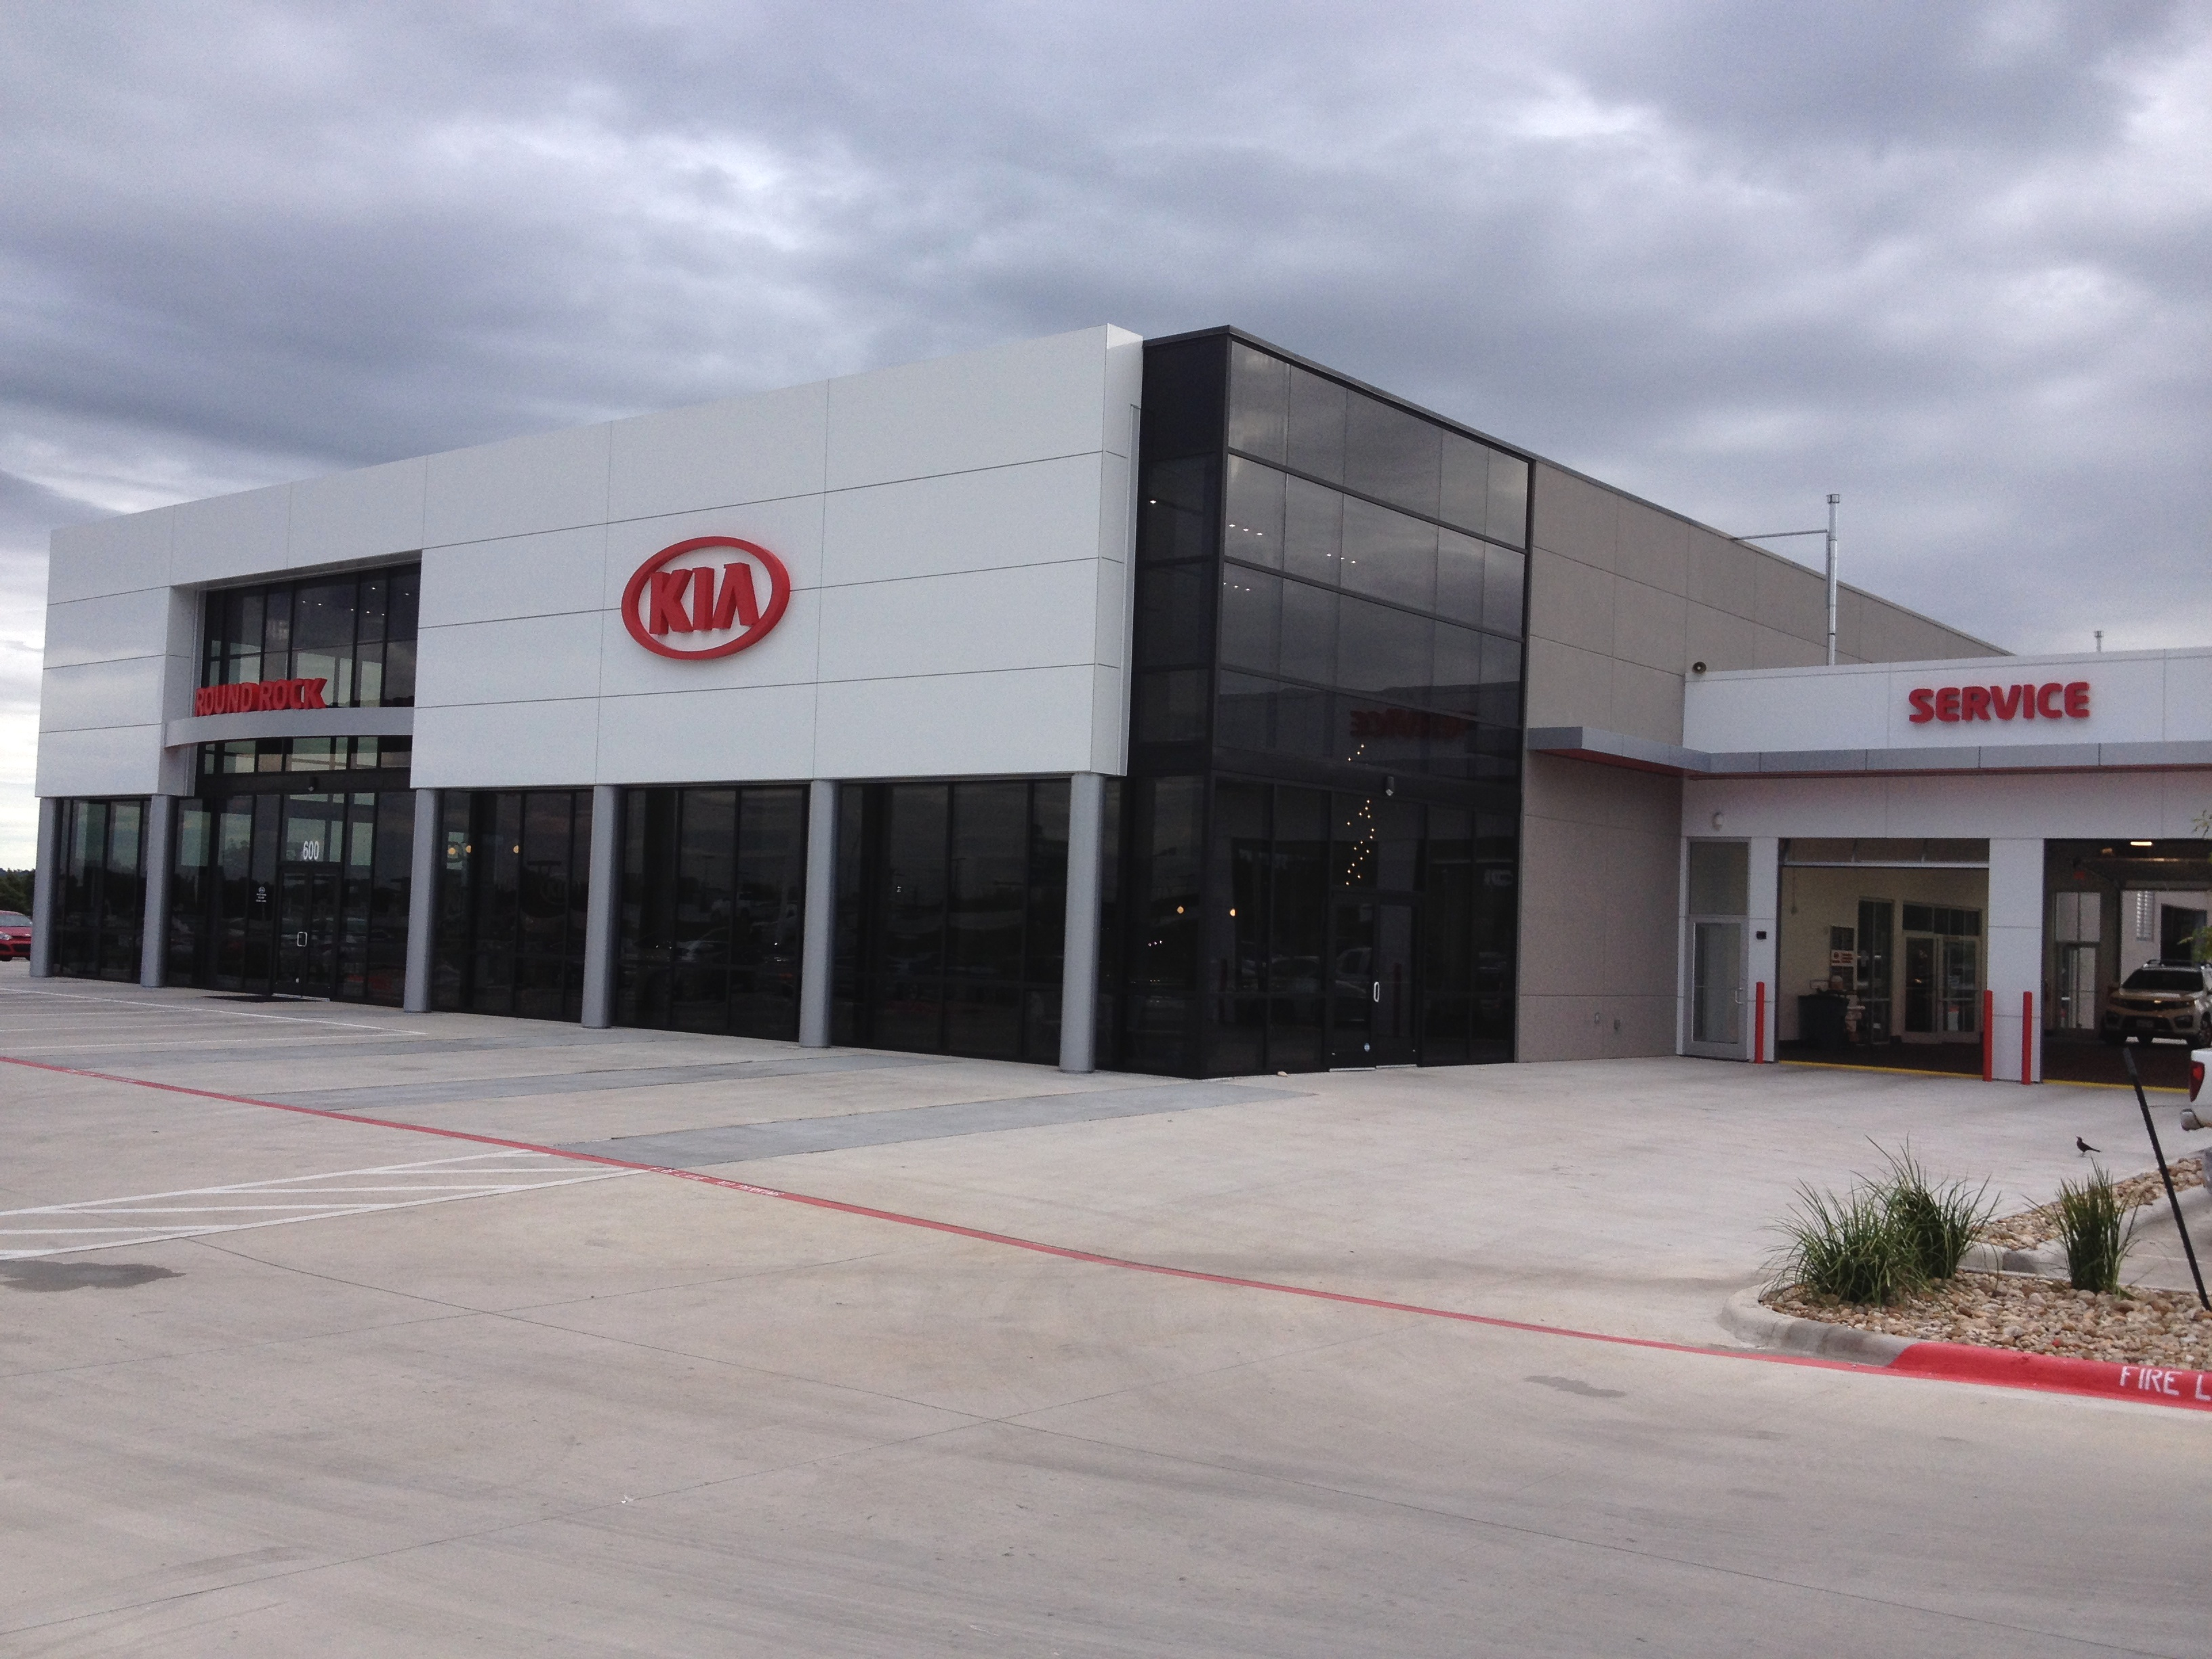 Mac Haik Dodge Temple Tx >> Jimsco Glass & Window, Inc. - Video & Image Gallery | ProView